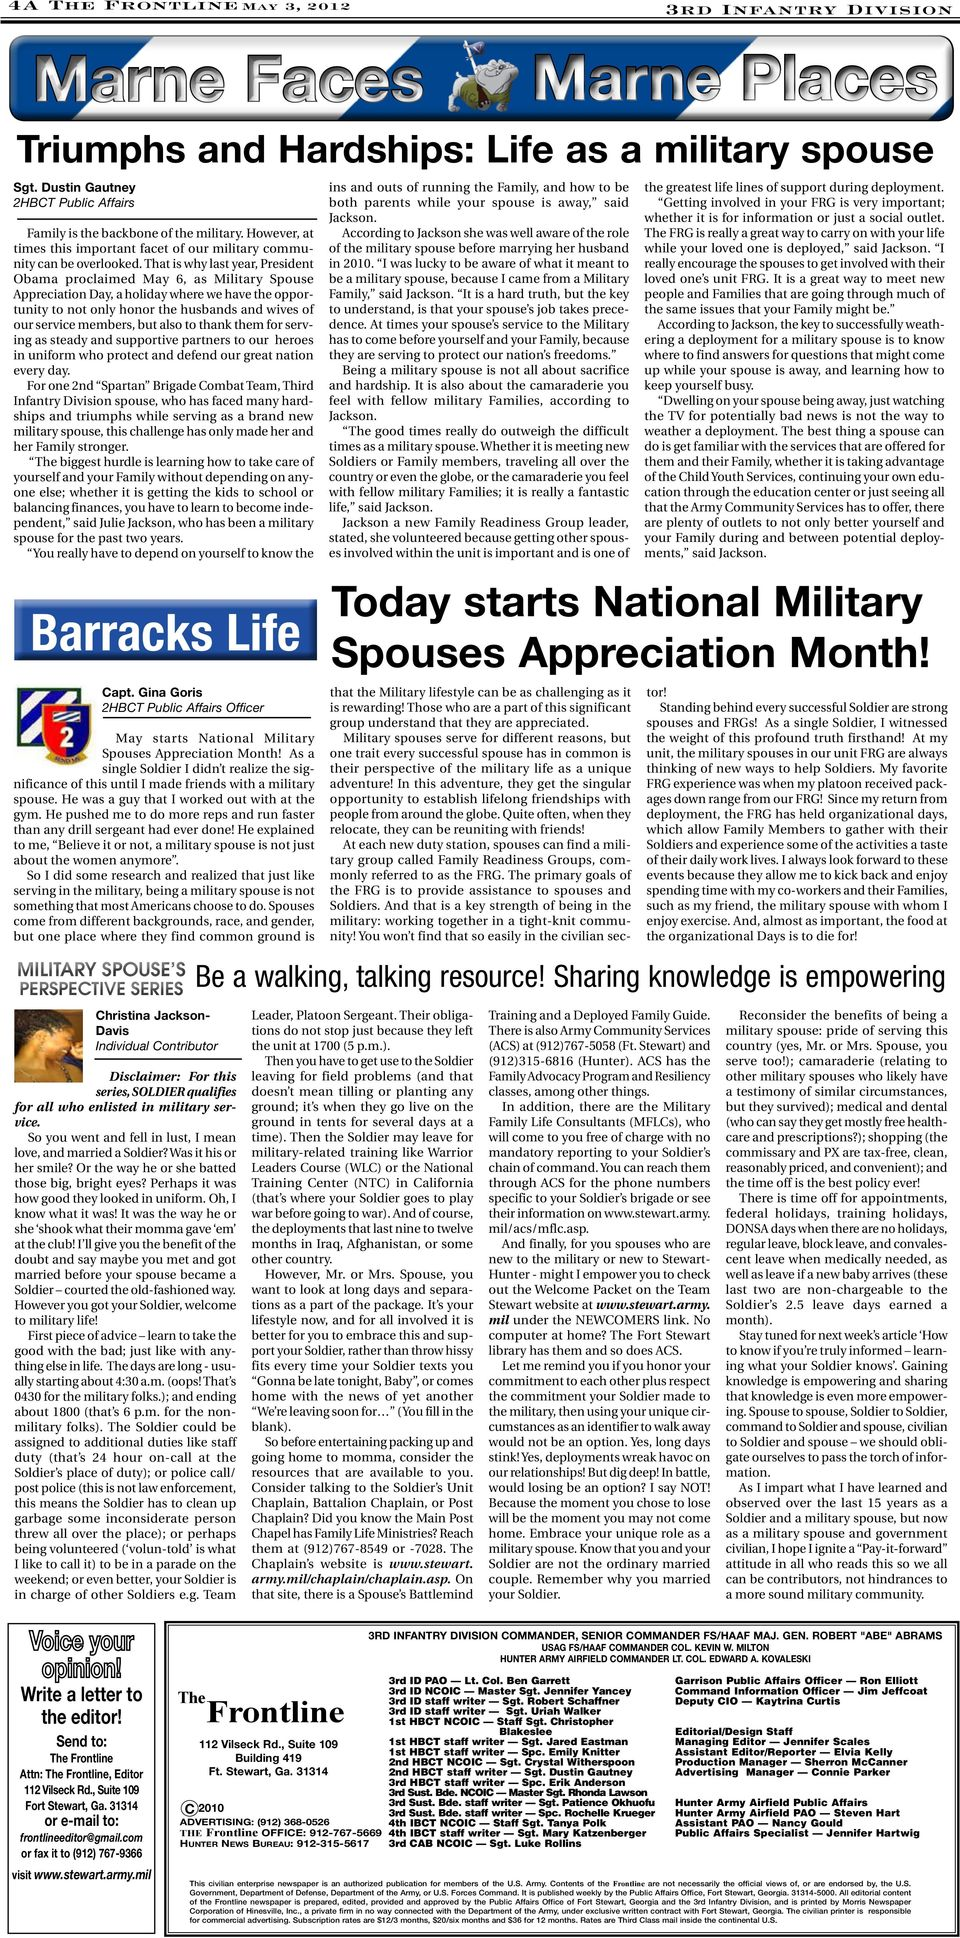 That is why last year, President Obama proclaimed May 6, as Military Spouse Appreciation Day, a holiday where we have the opportunity to not only honor the husbands and wives of our service members,